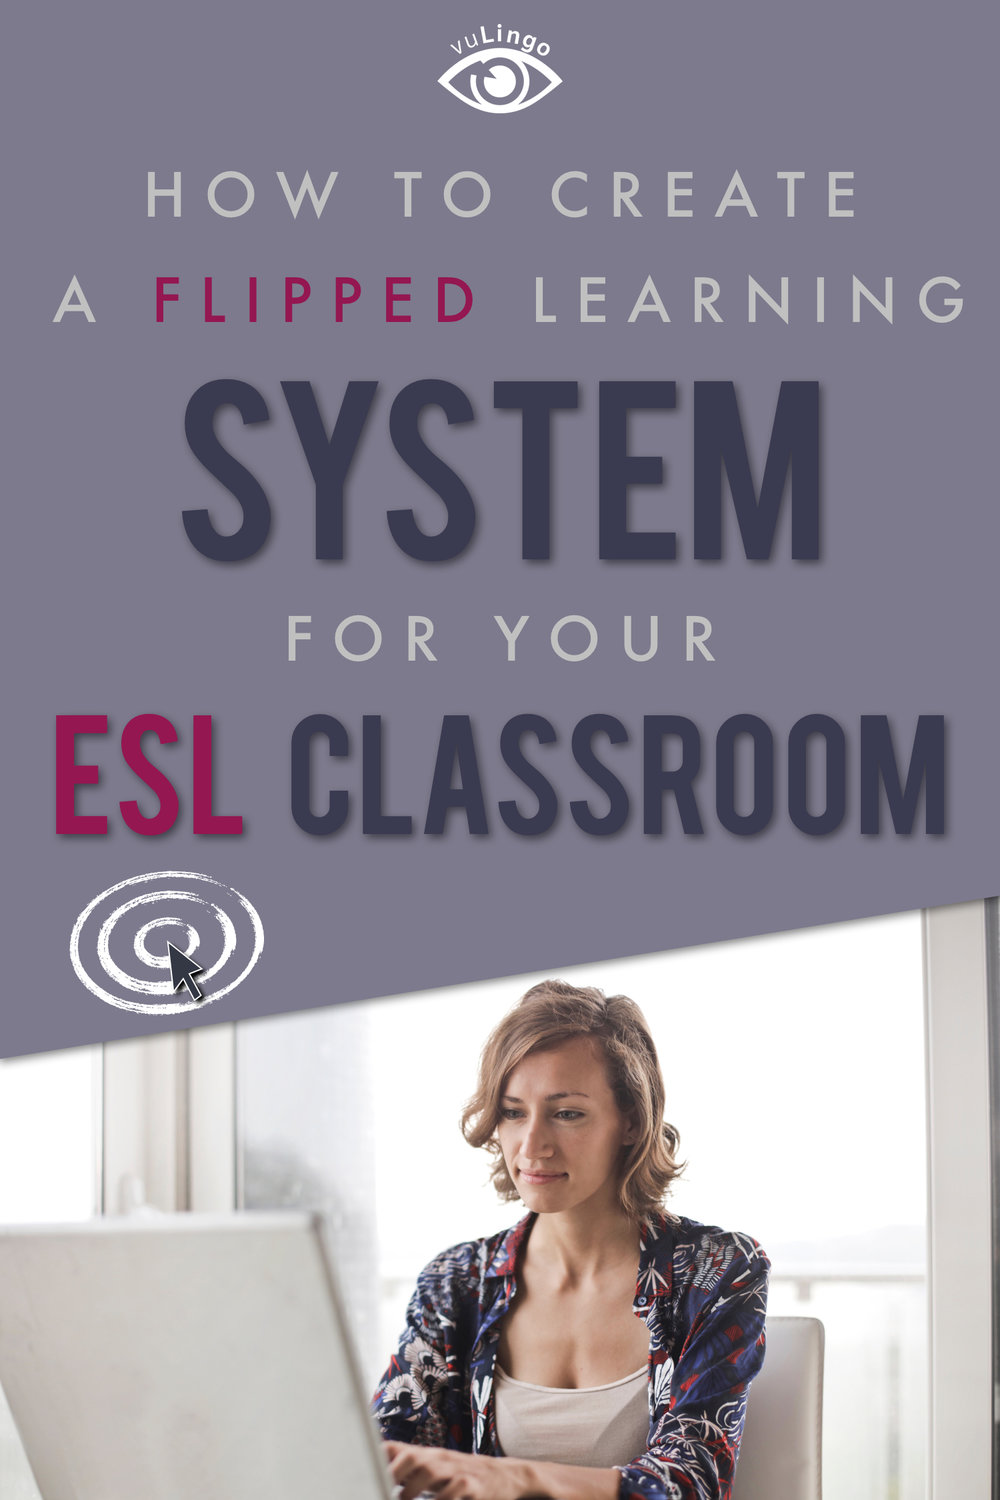 How to Create a Flipped Learning System 2.jpeg